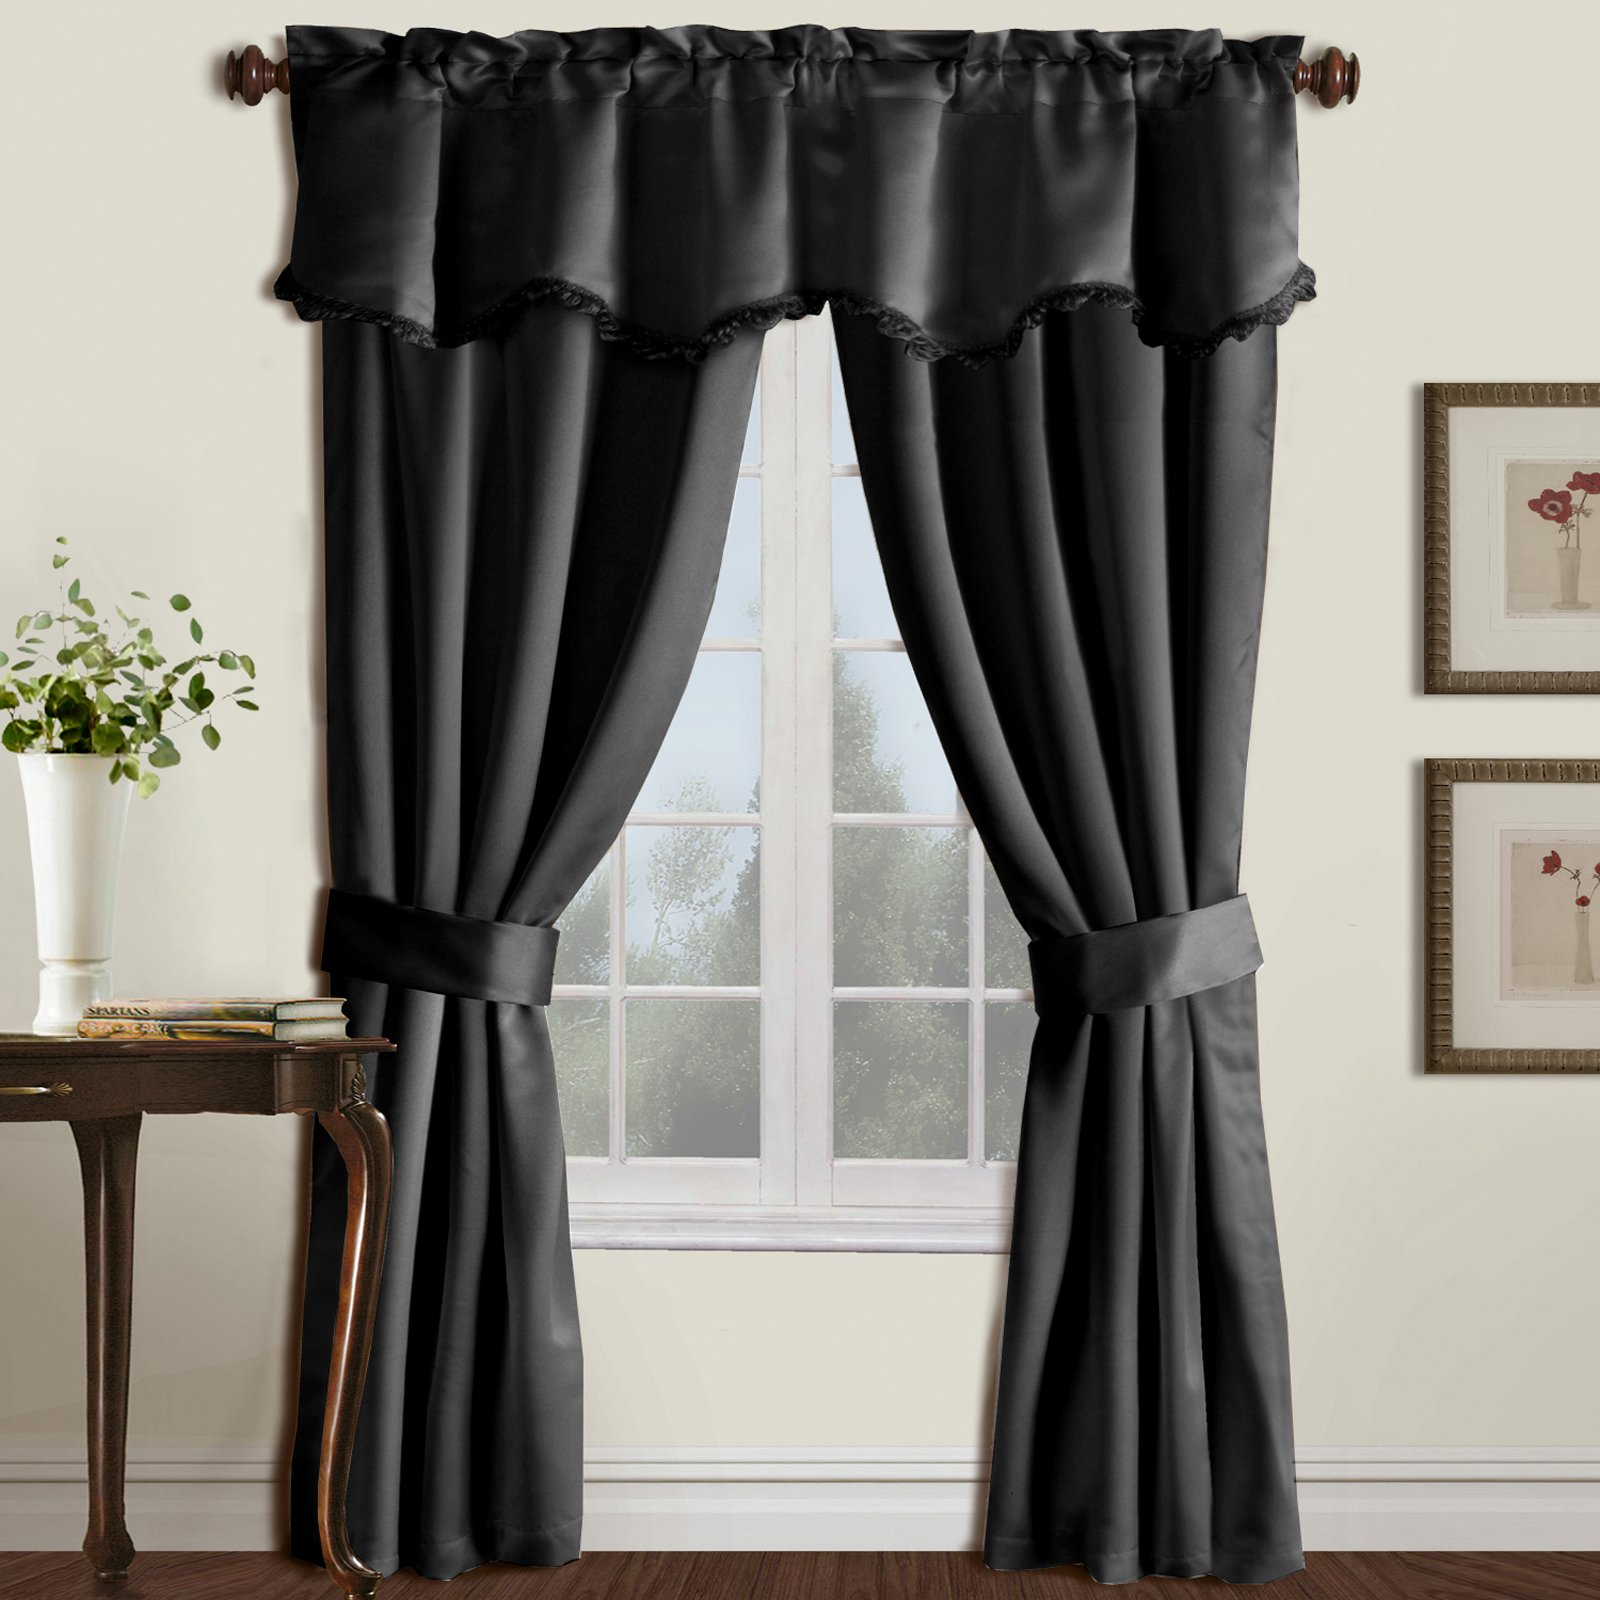 Walmart Curtains For Living Room Prepossessing United Curtain Burlington 5 Piece Window Curtain Set  Walmart Review